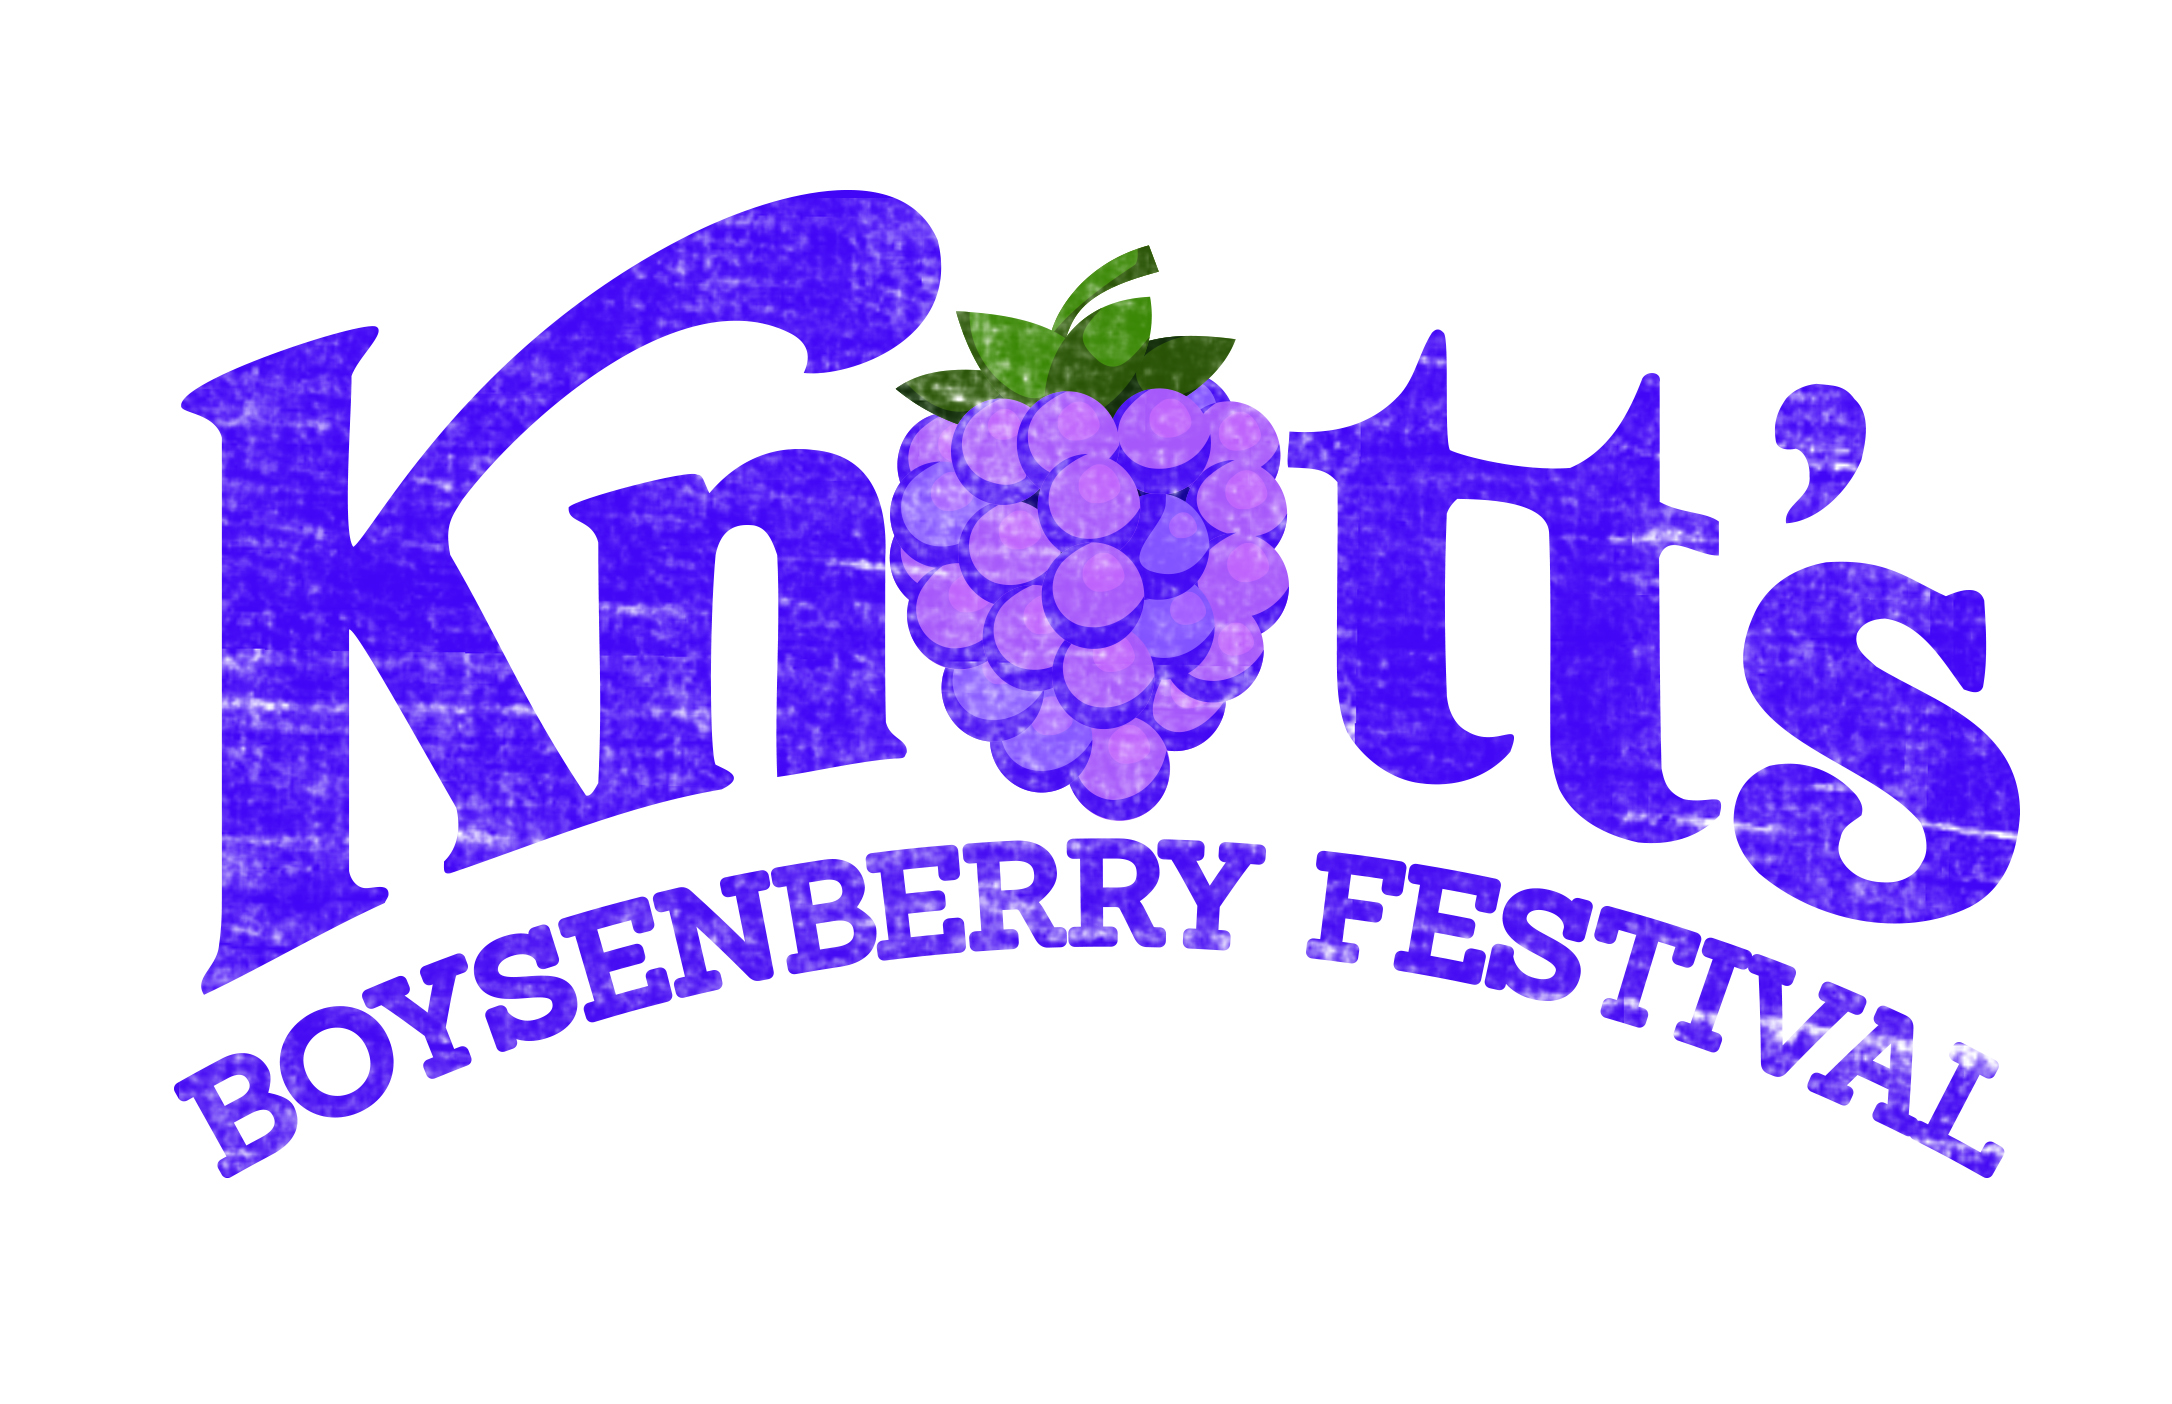 Boysenberry Festival Logo